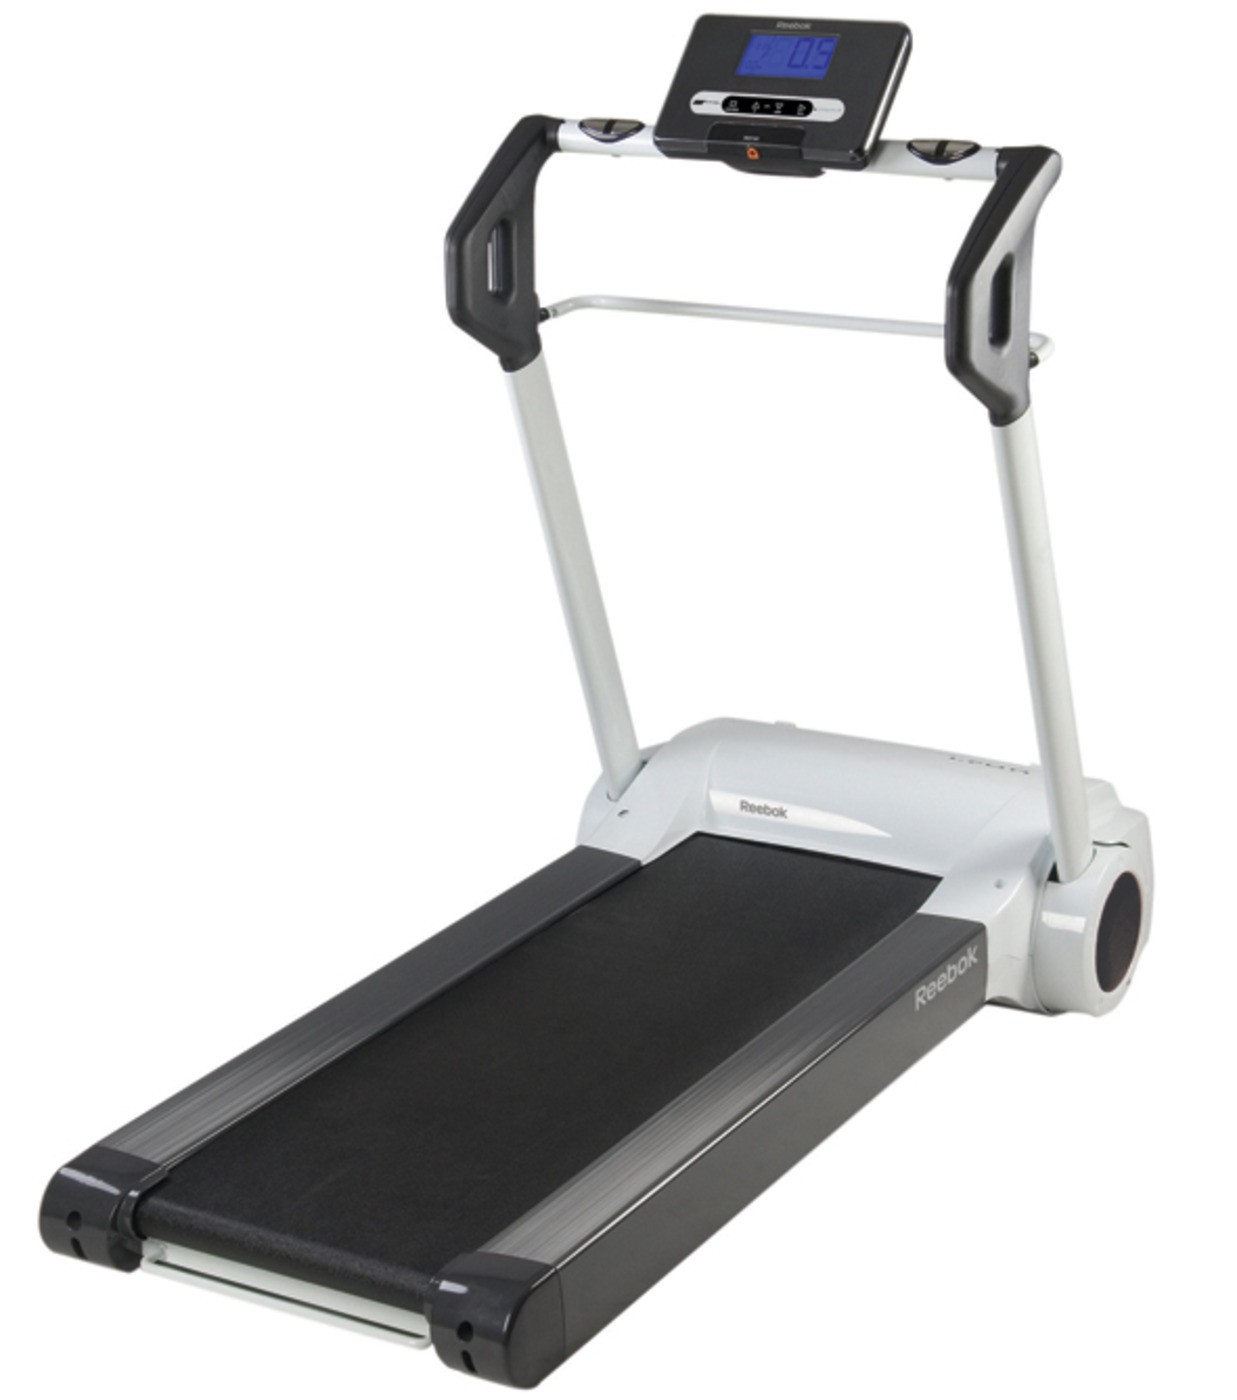 Fitness Equipment I-Run S Treadmill (Black) - CLICK FOR MORE INFORMATION